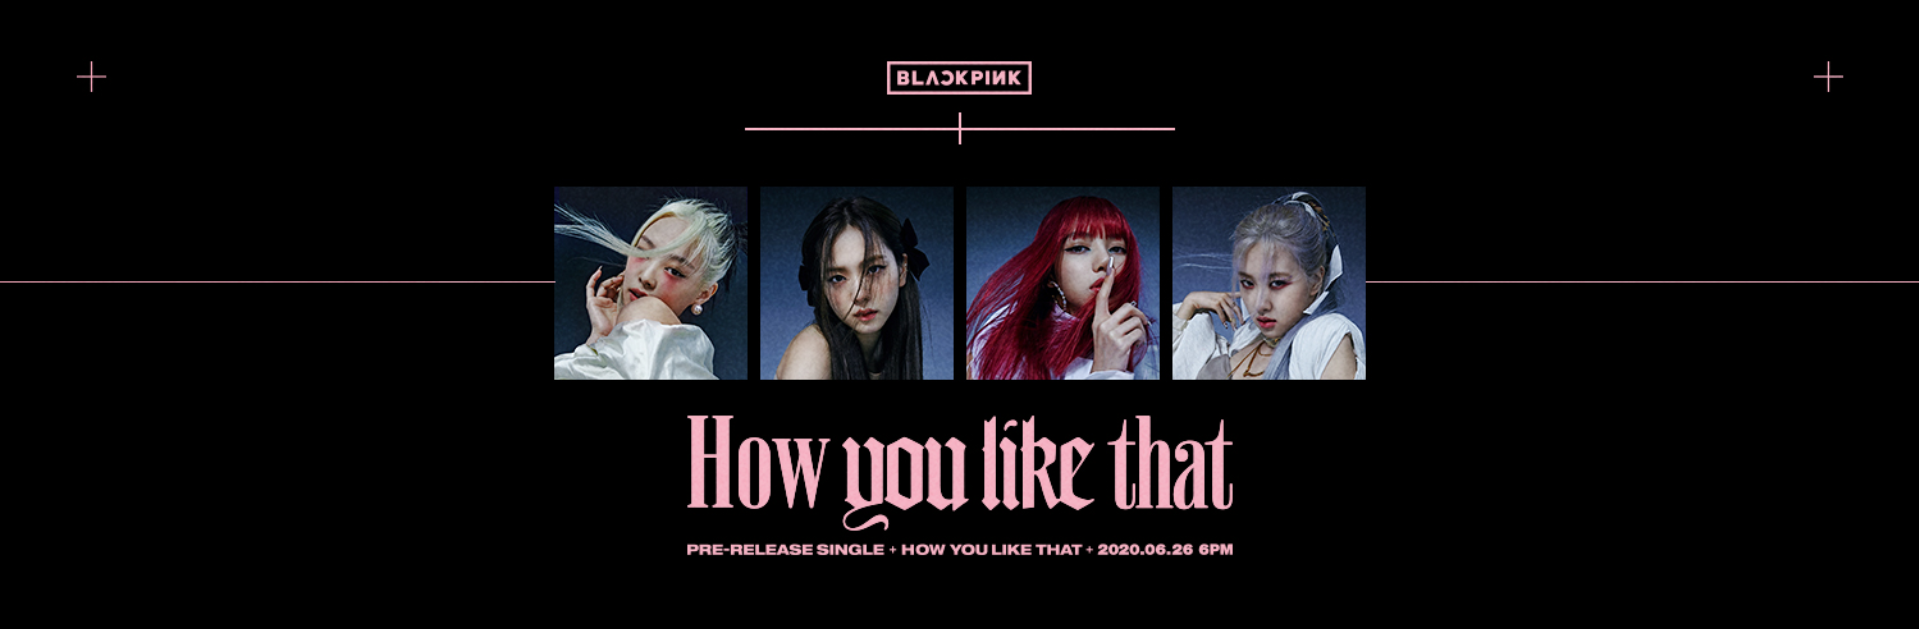 Black Pink How You Like That Banner